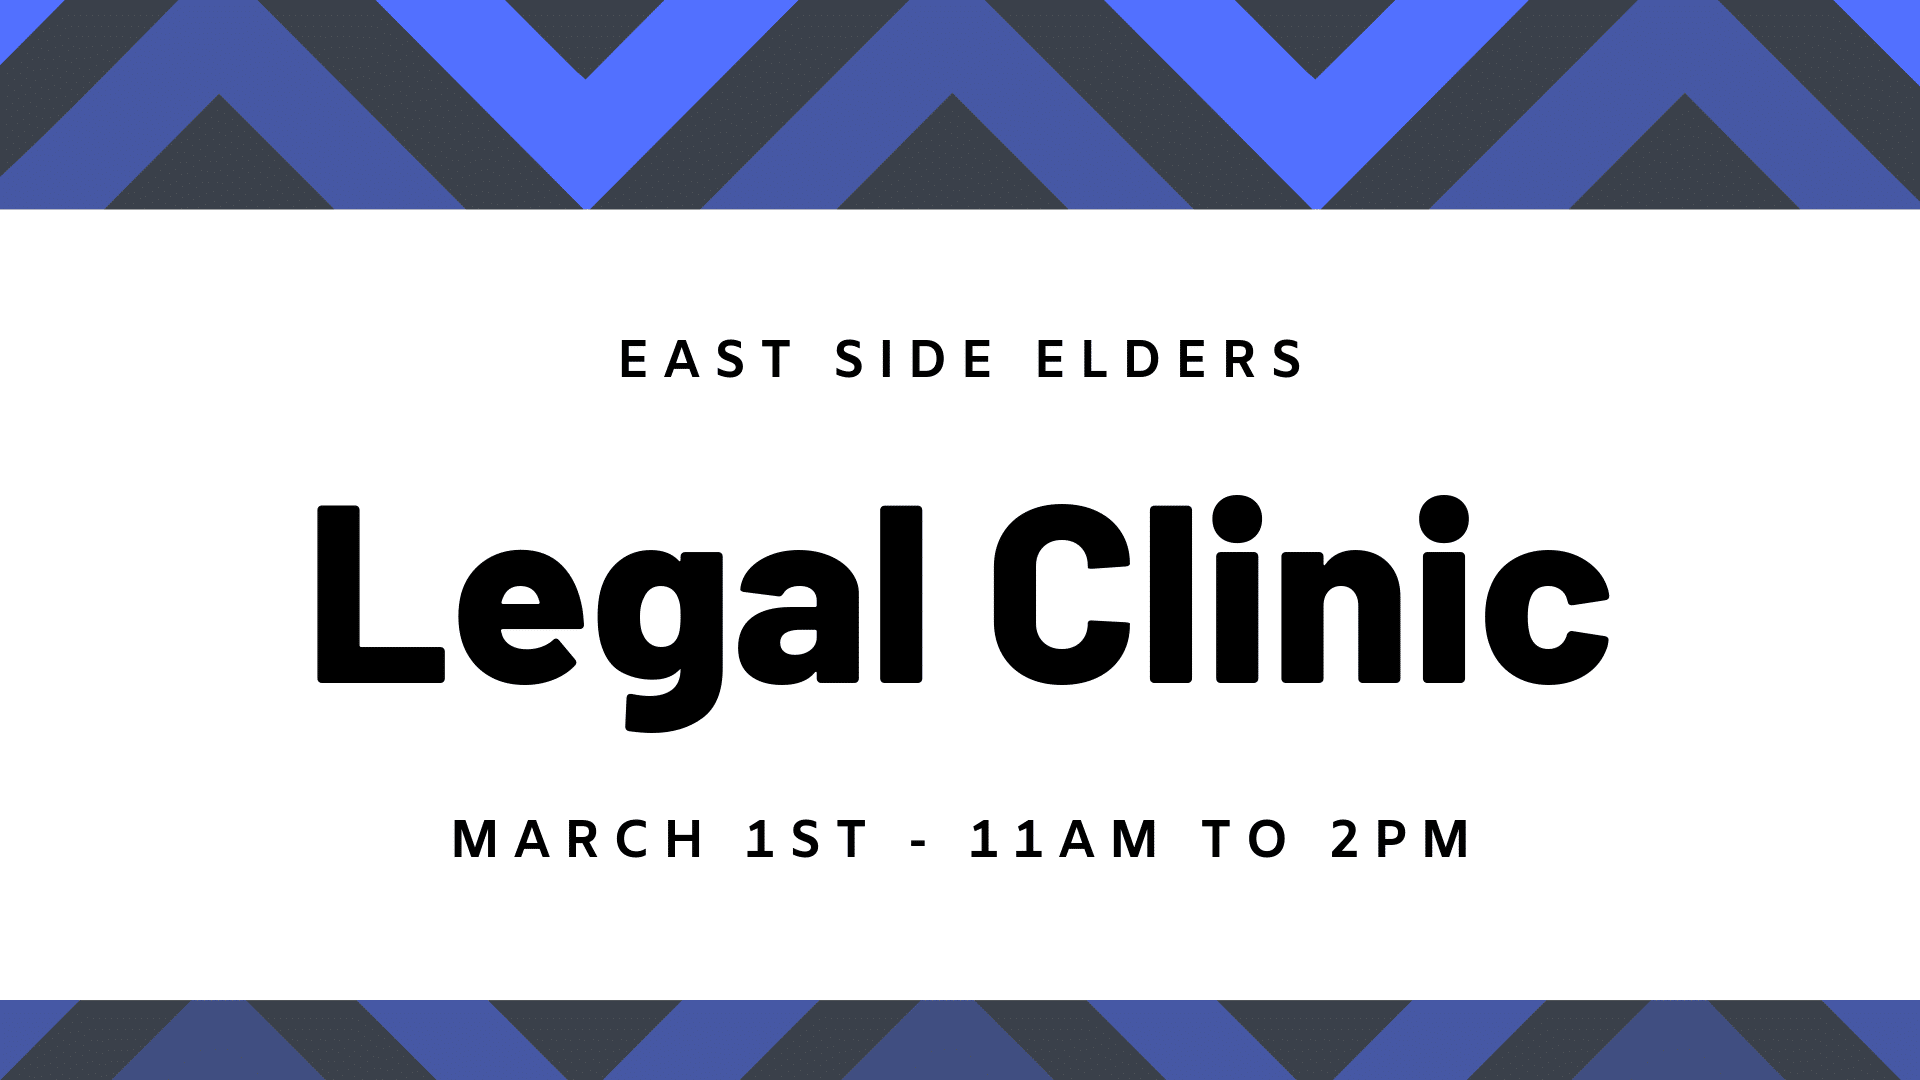 Blue geometric design. Text reads: East Side Elders. Elder Fest. March 1st - 11am to 2pm